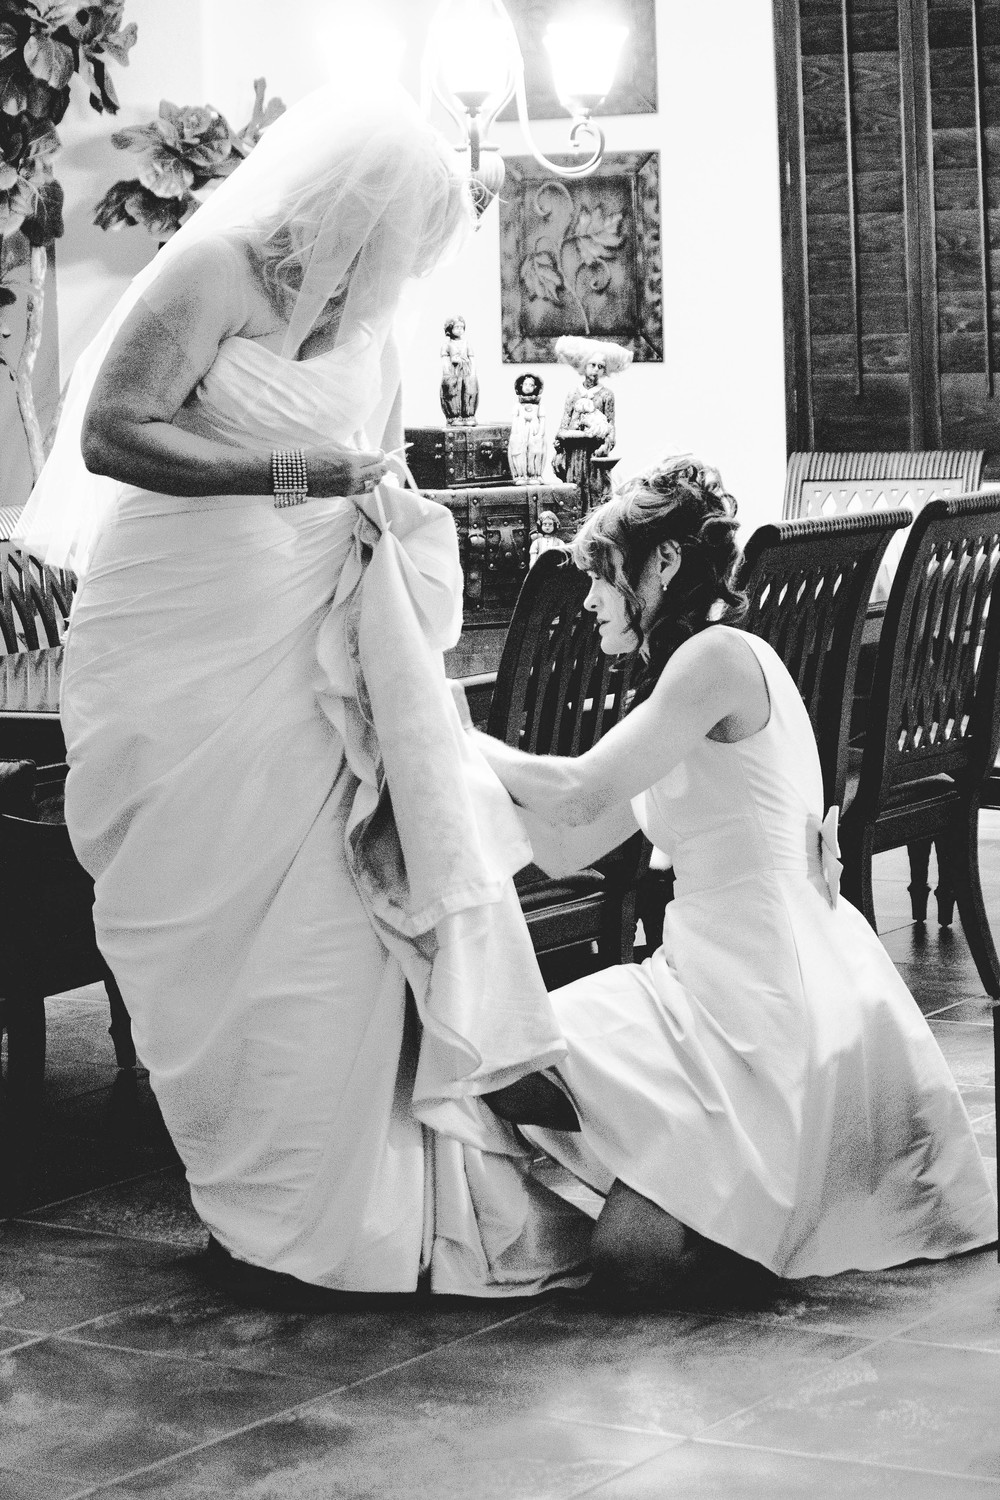 This image isn't of the best quality, but it is a sweet moment between sisters. The bride's sister was bustling the dress for the reception and when nobody else was around I caught this moment. I love moments like these....